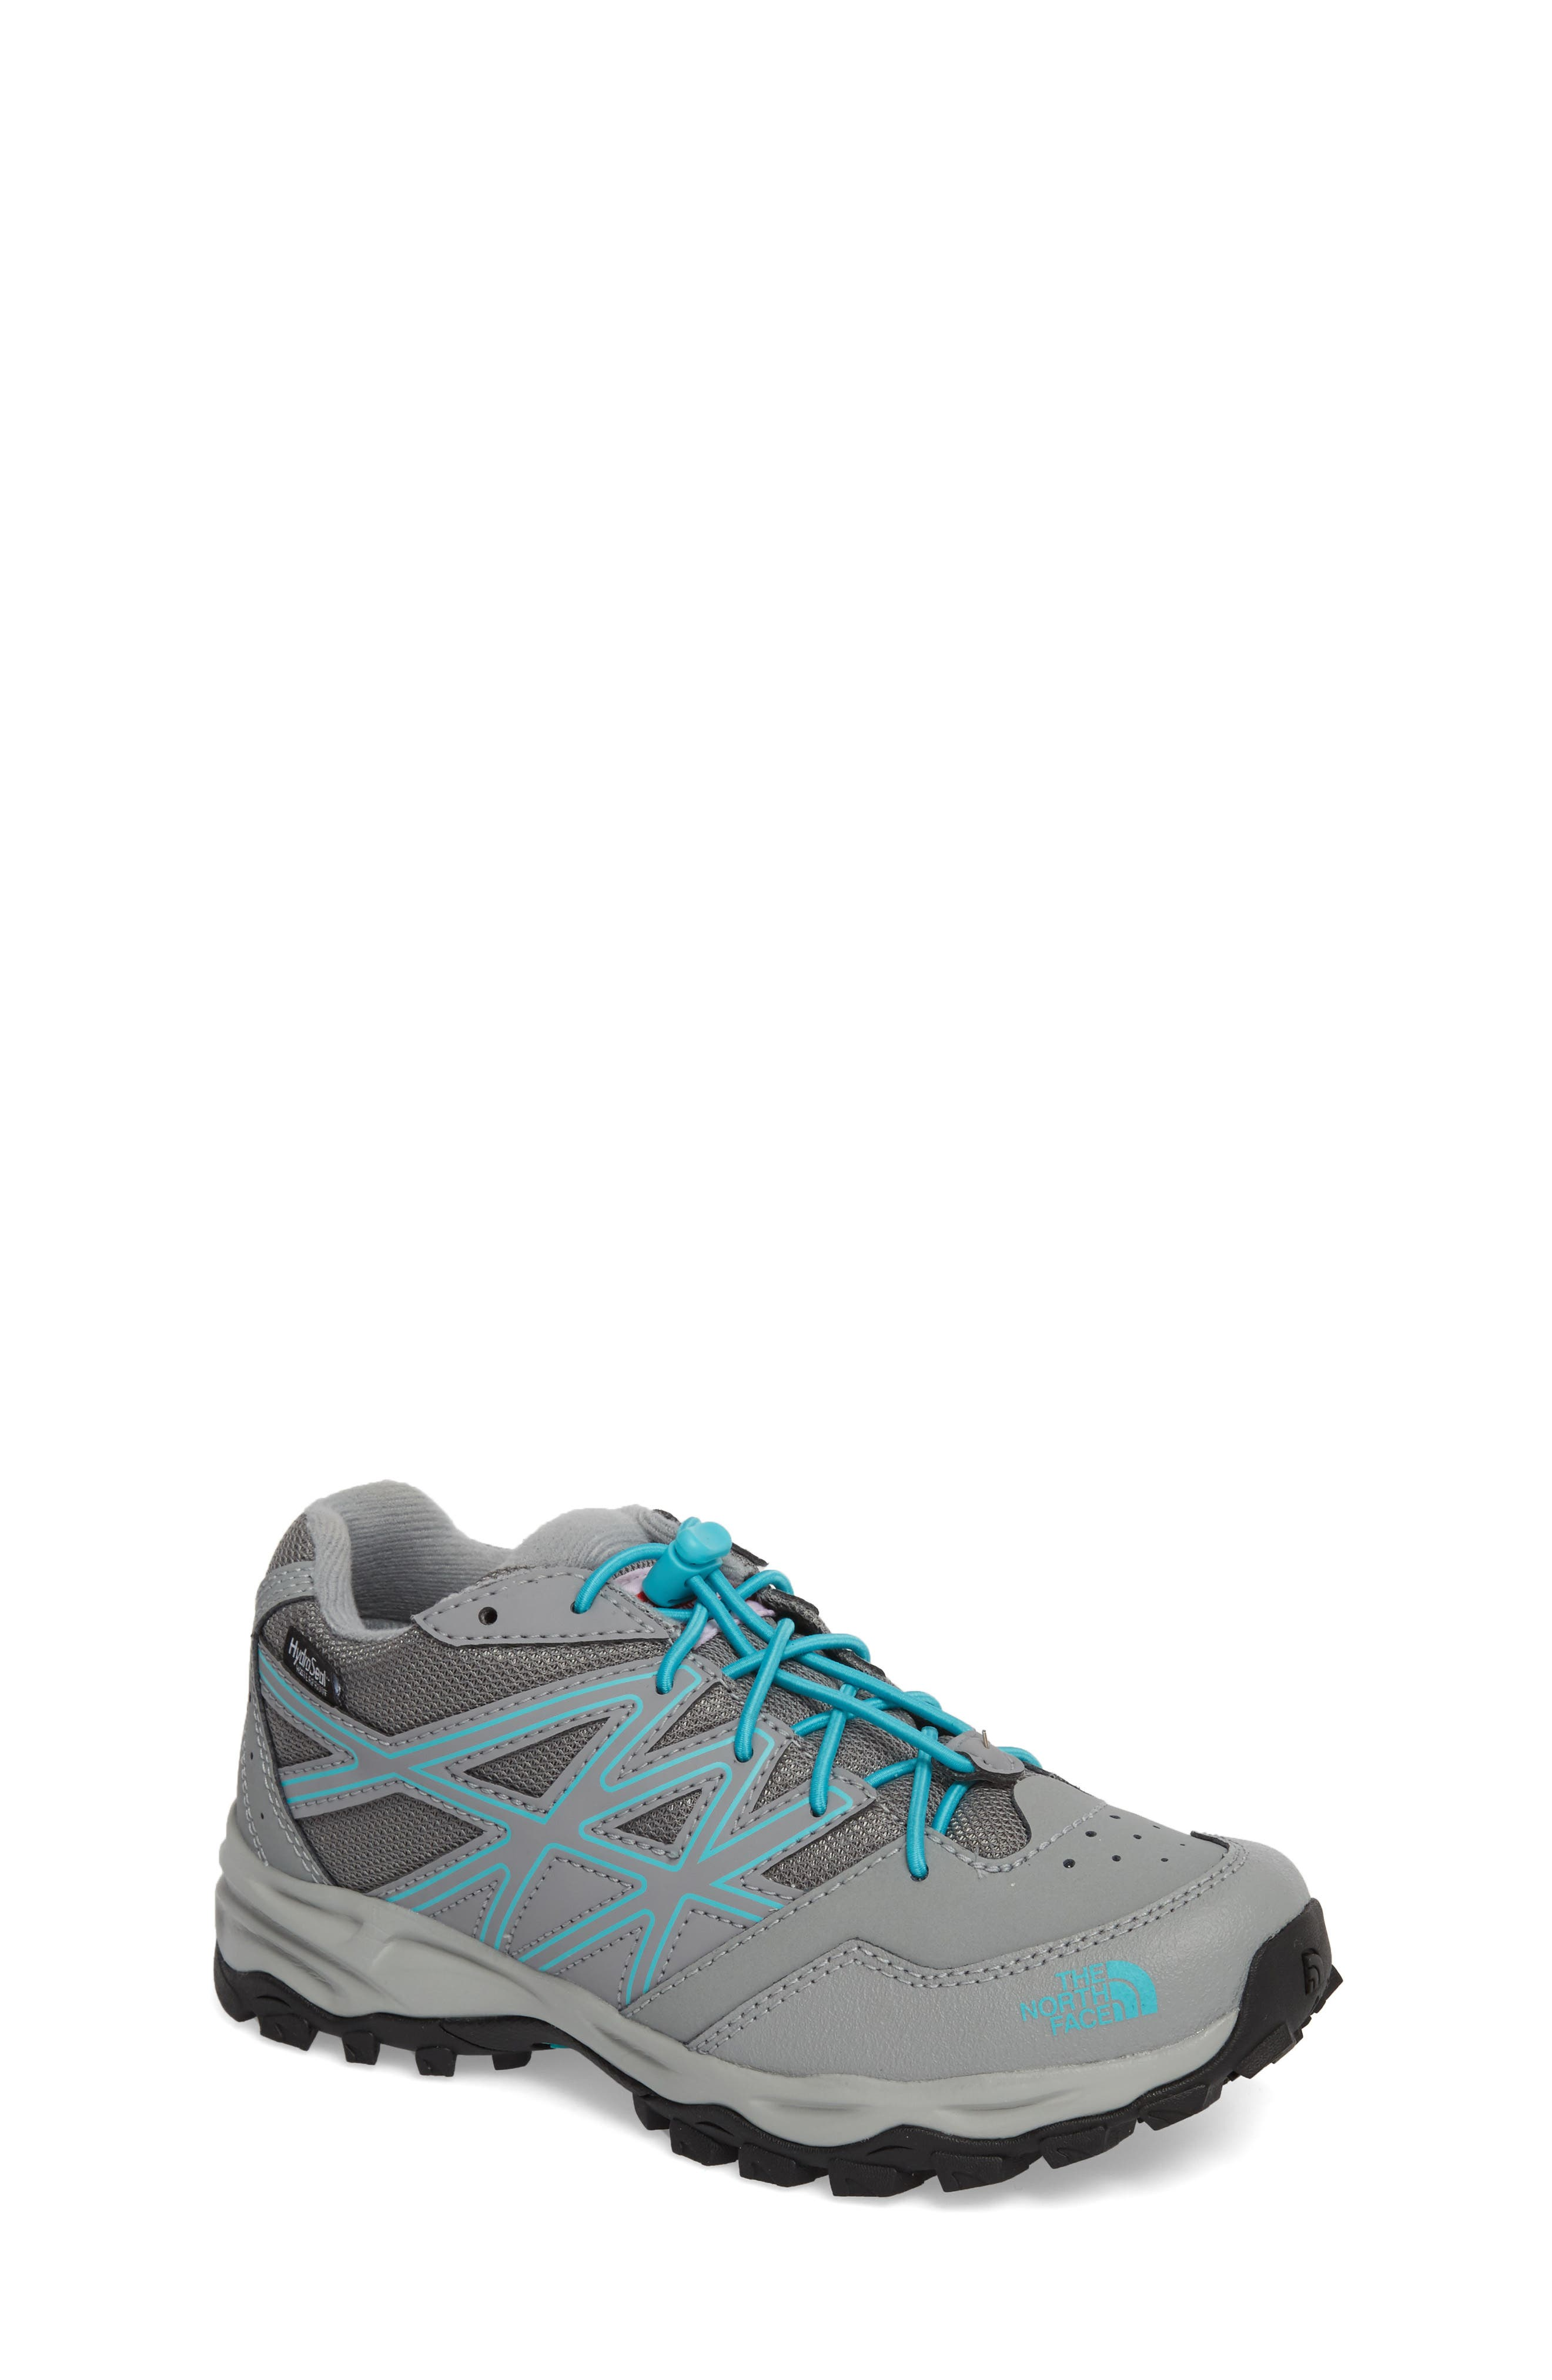 THE NORTH FACE Hedgehog Hiker Boot, Main, color, 022